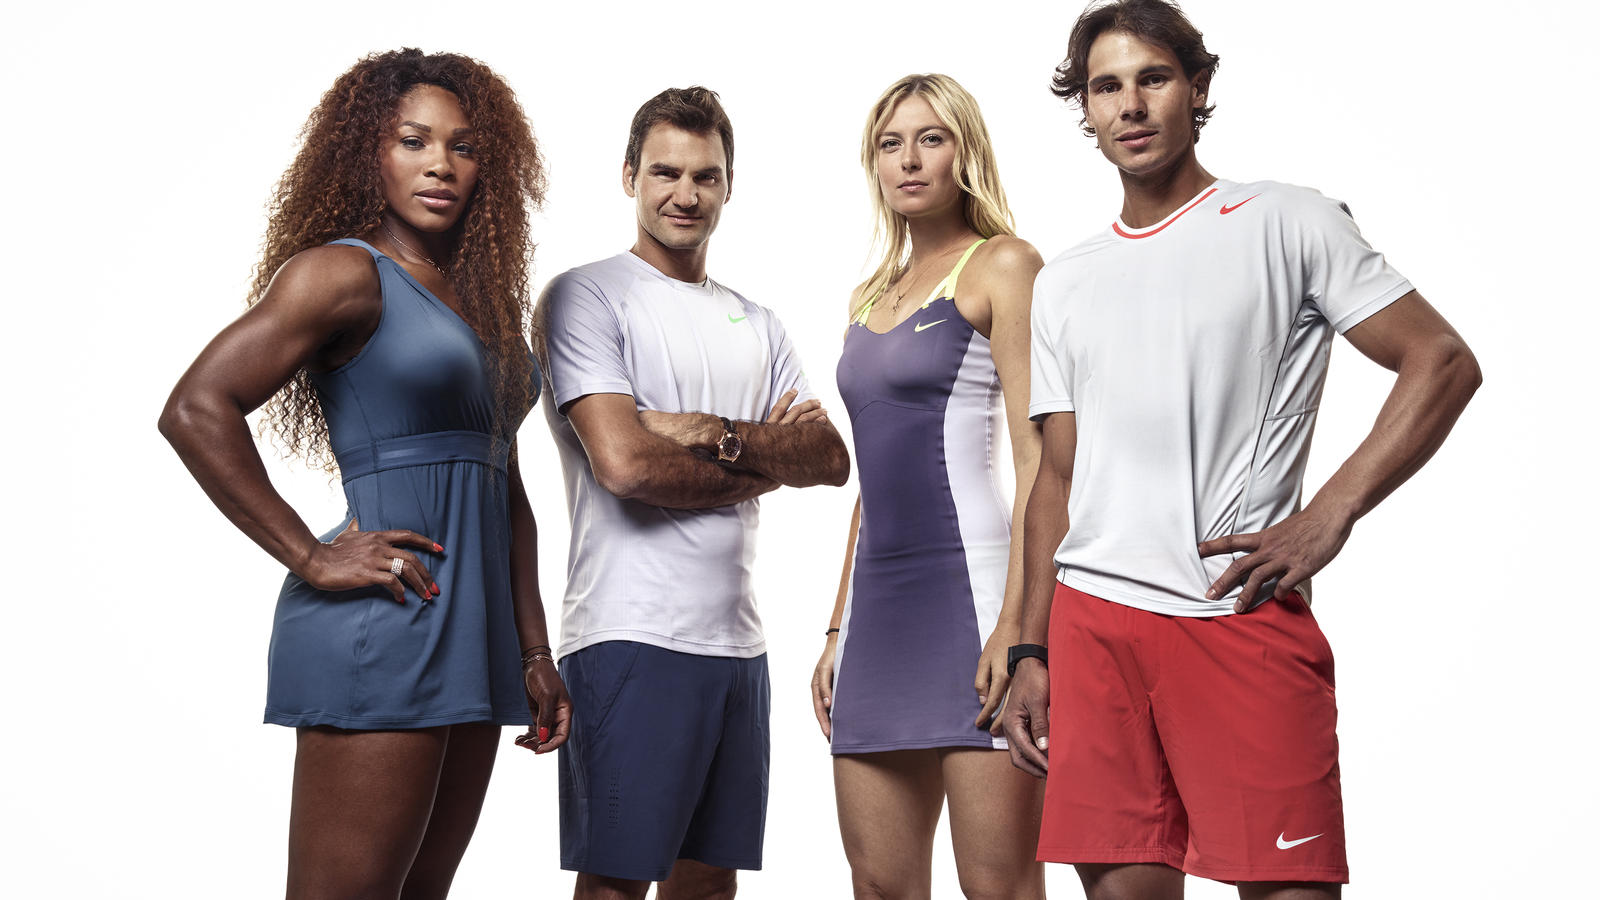 Tennis icons group shot